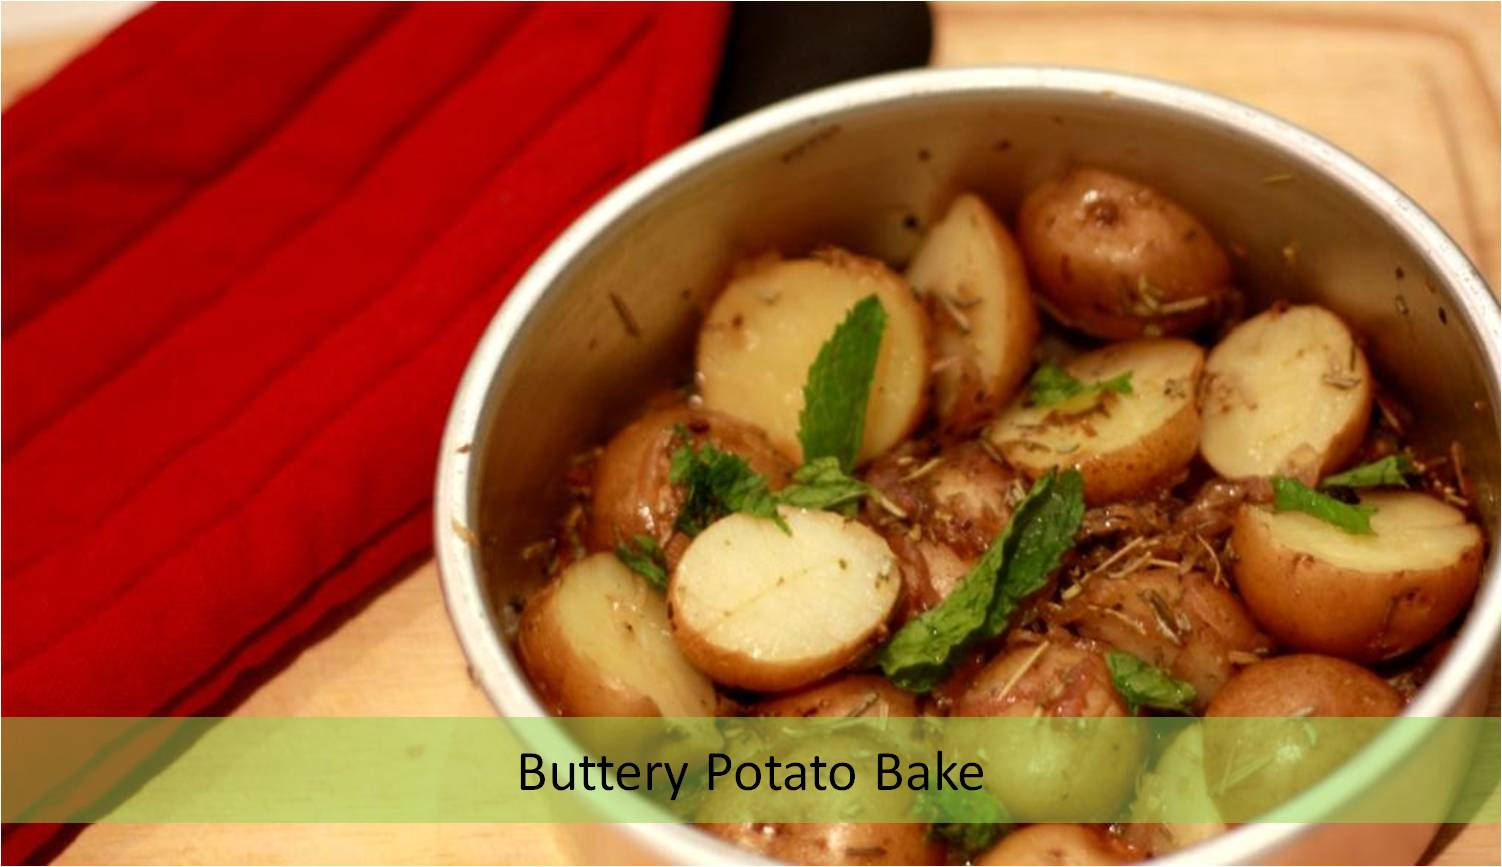 buttery potato bake, potato snack, baked potato, chatpate aaloo,